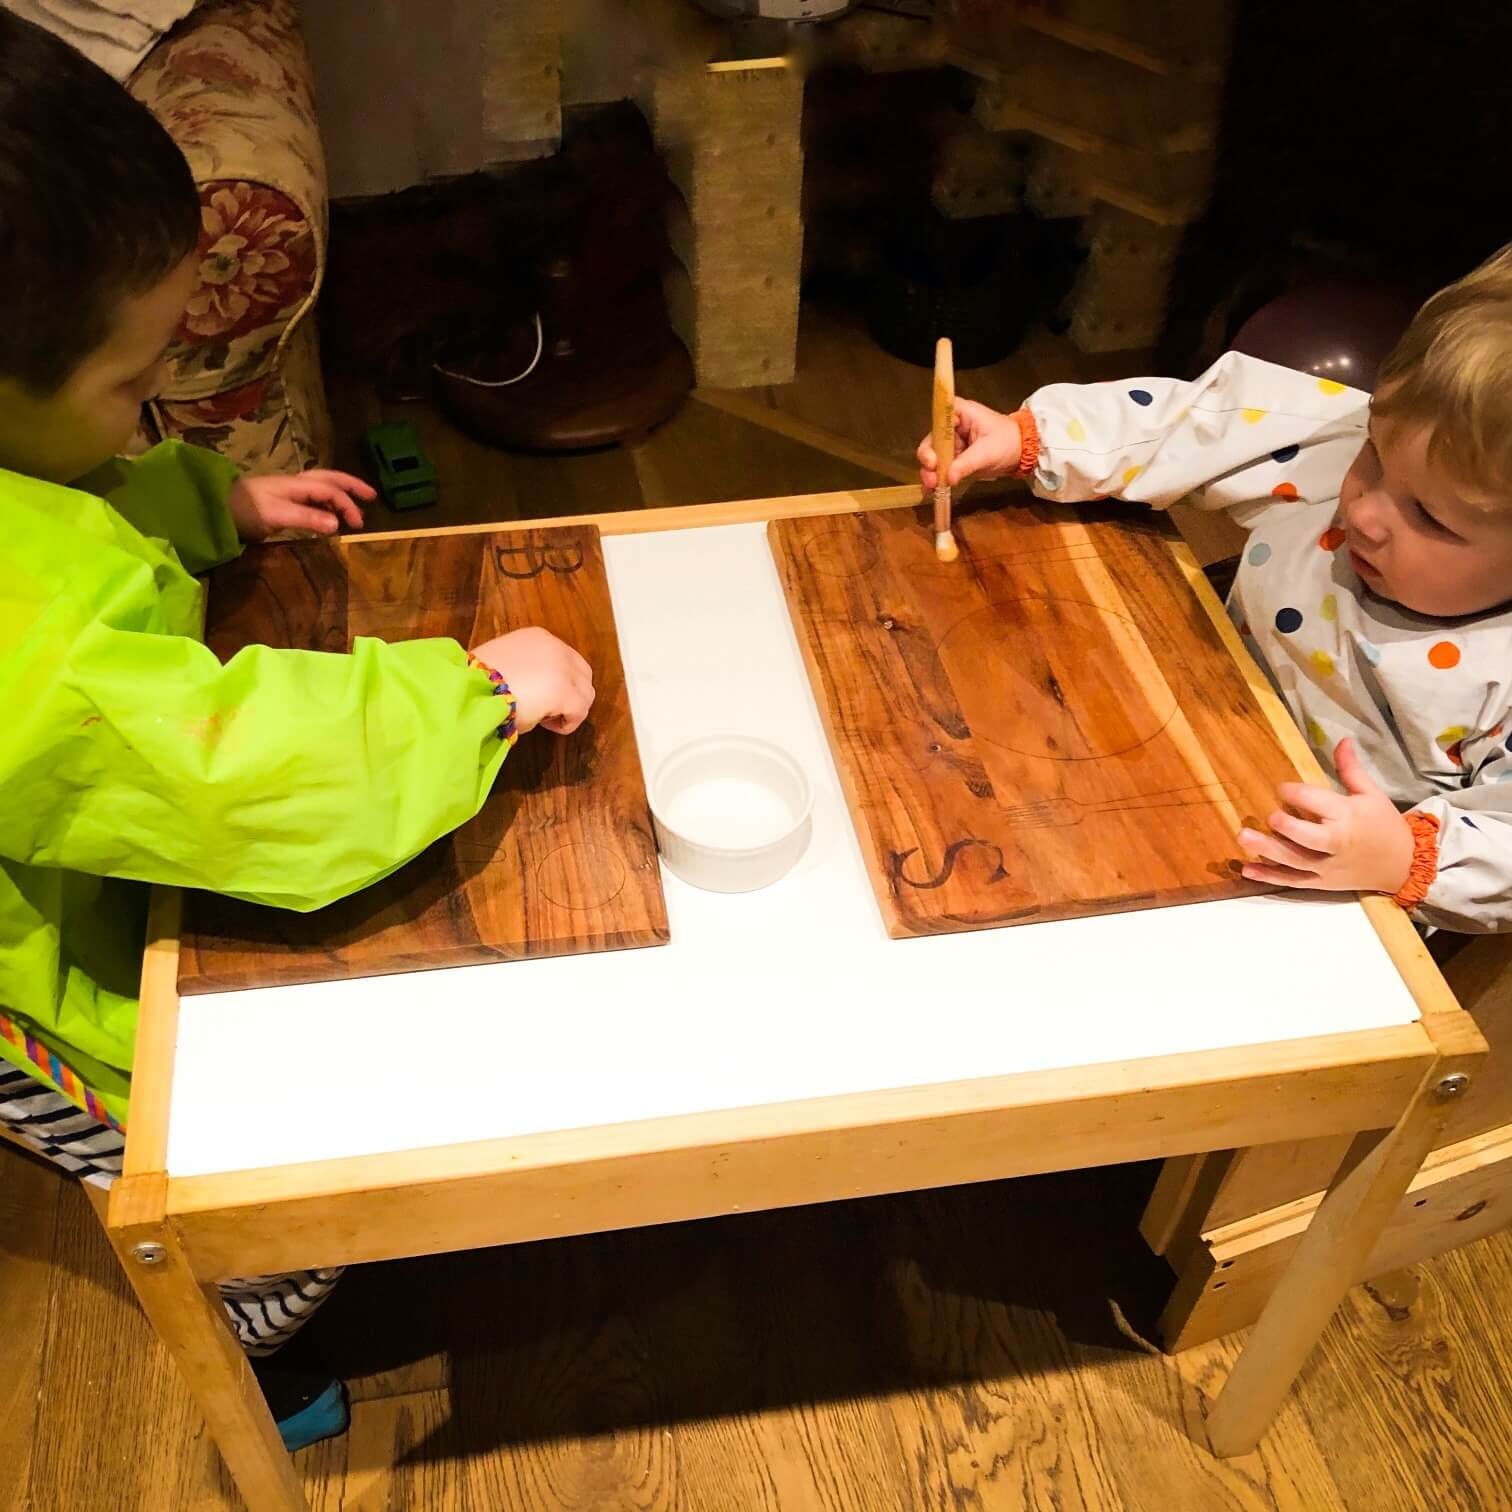 Benedykt and Sylvester - Montessori Placemat Cleaning